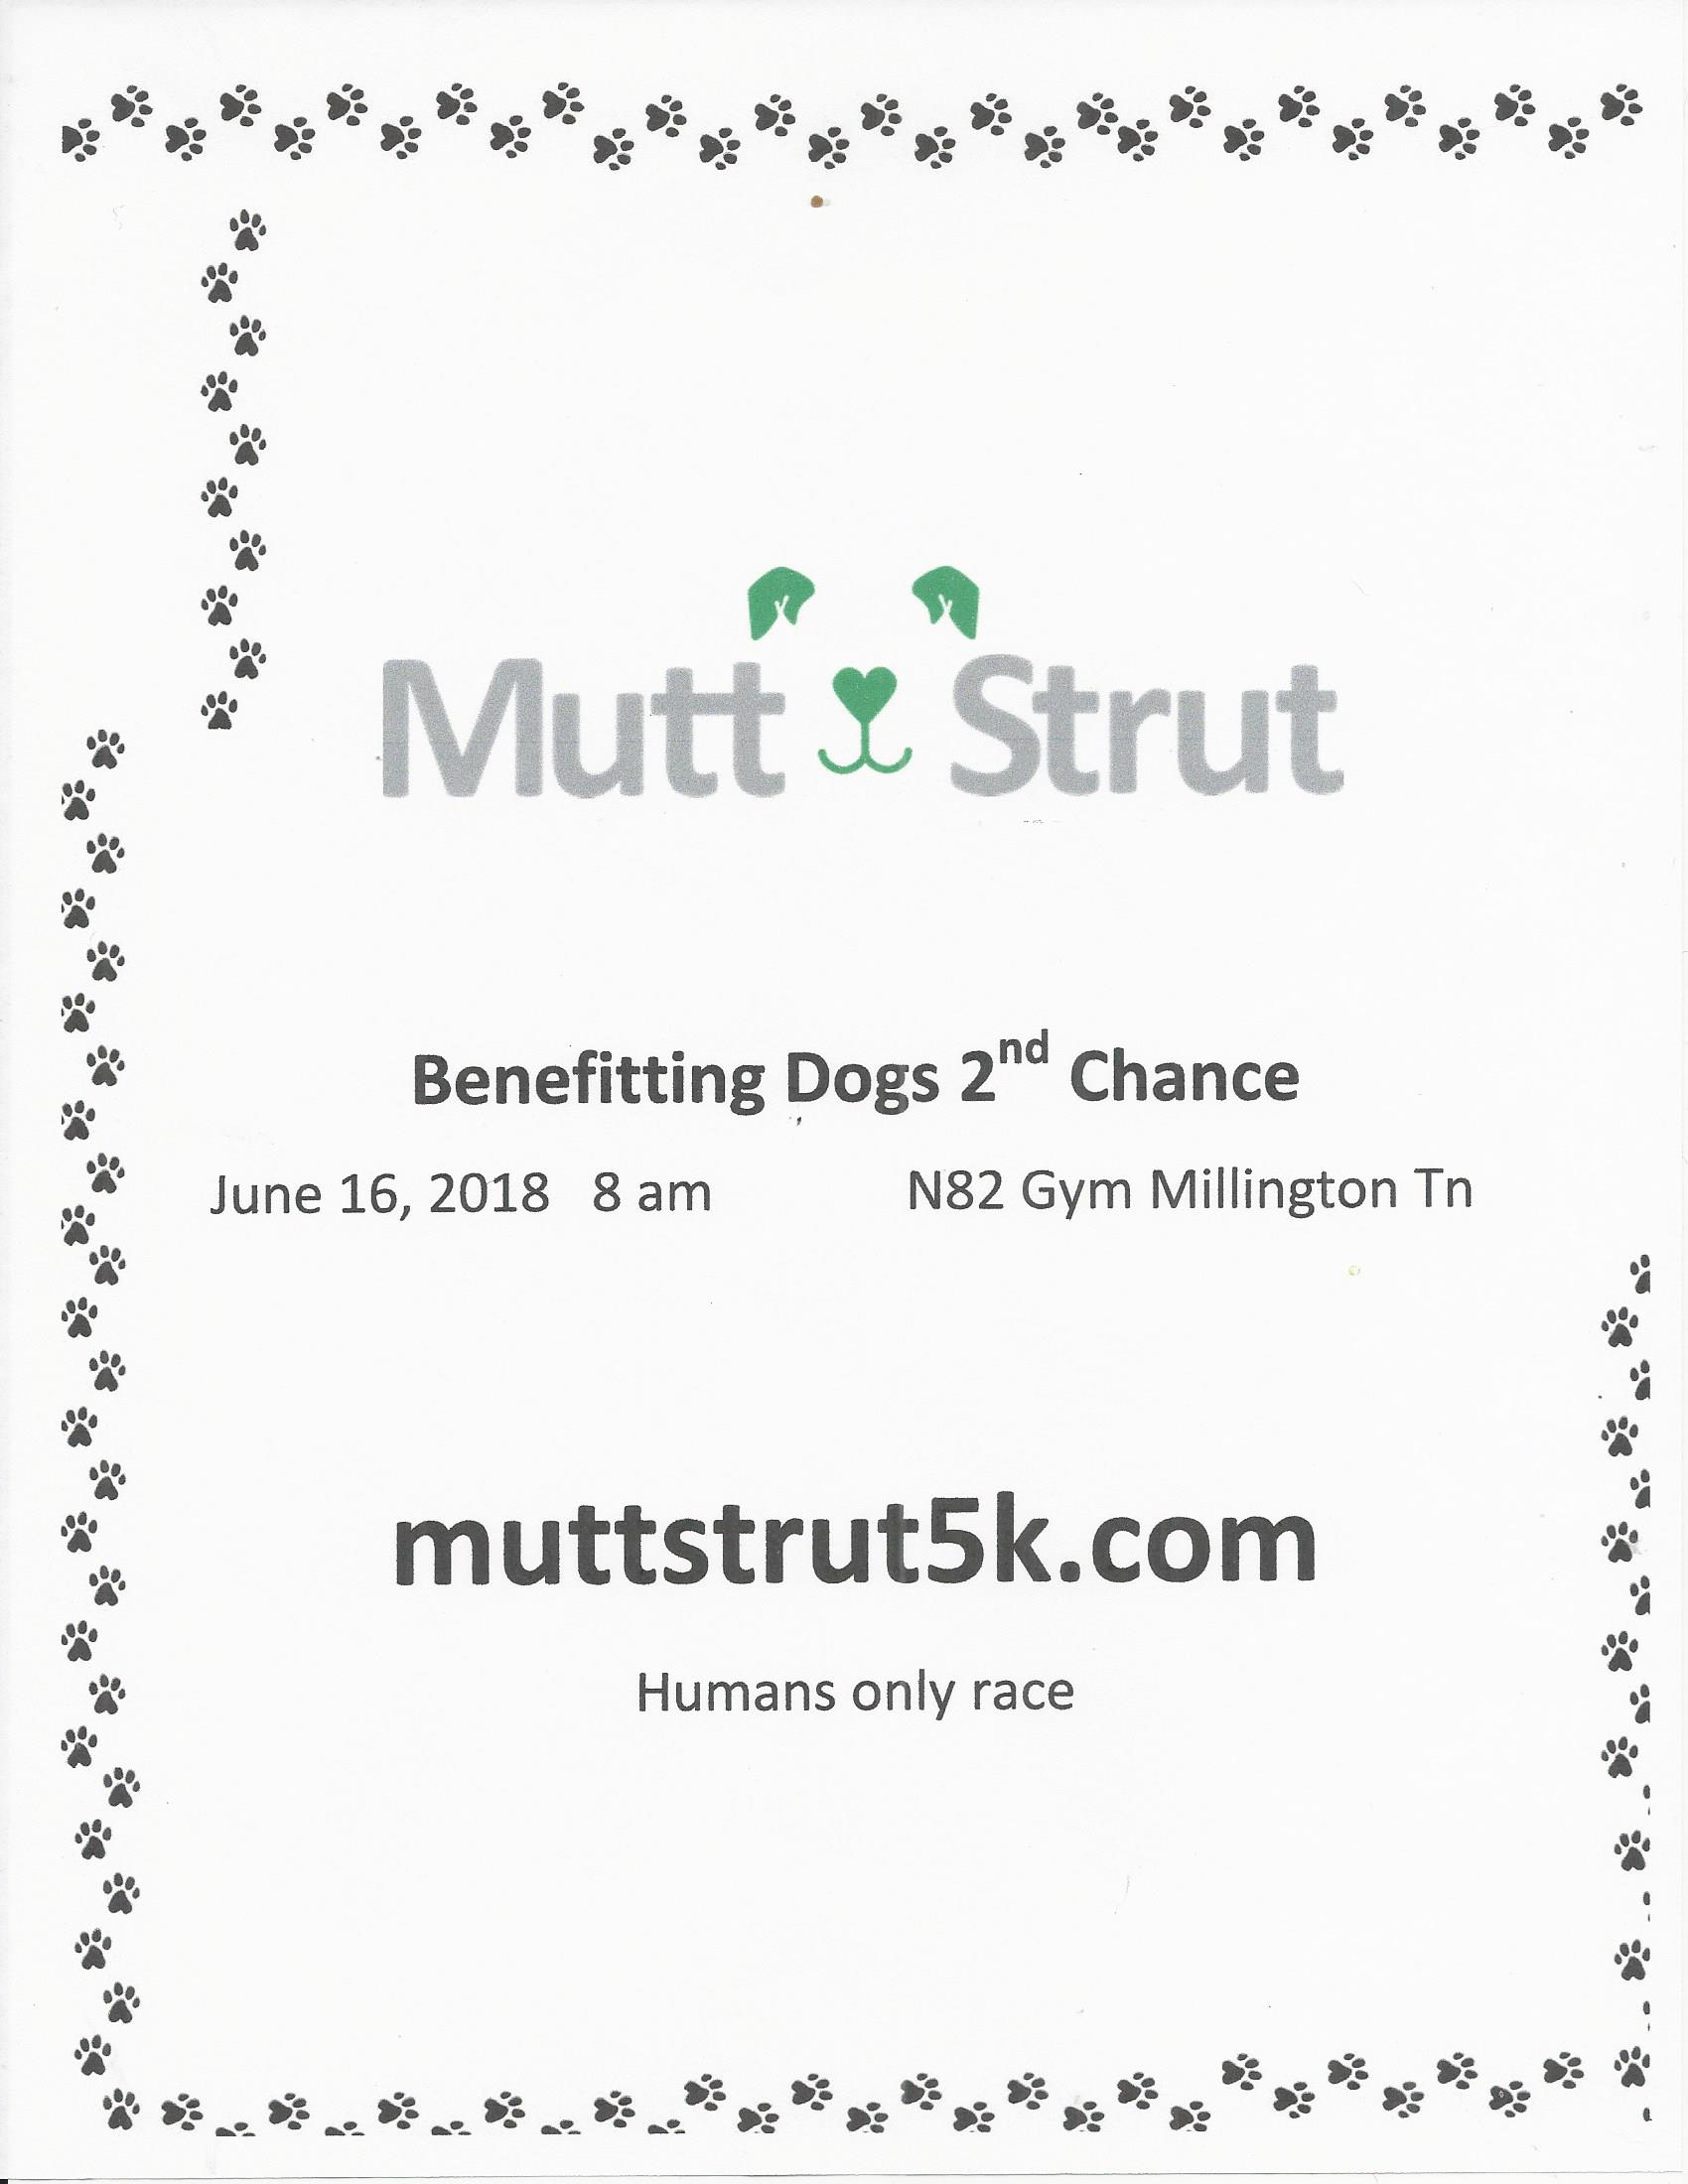 Mutt Strut 5k to benefit Dogs 2nd Chance is June 16, 2018 at the N82 Gym, Millington, TN